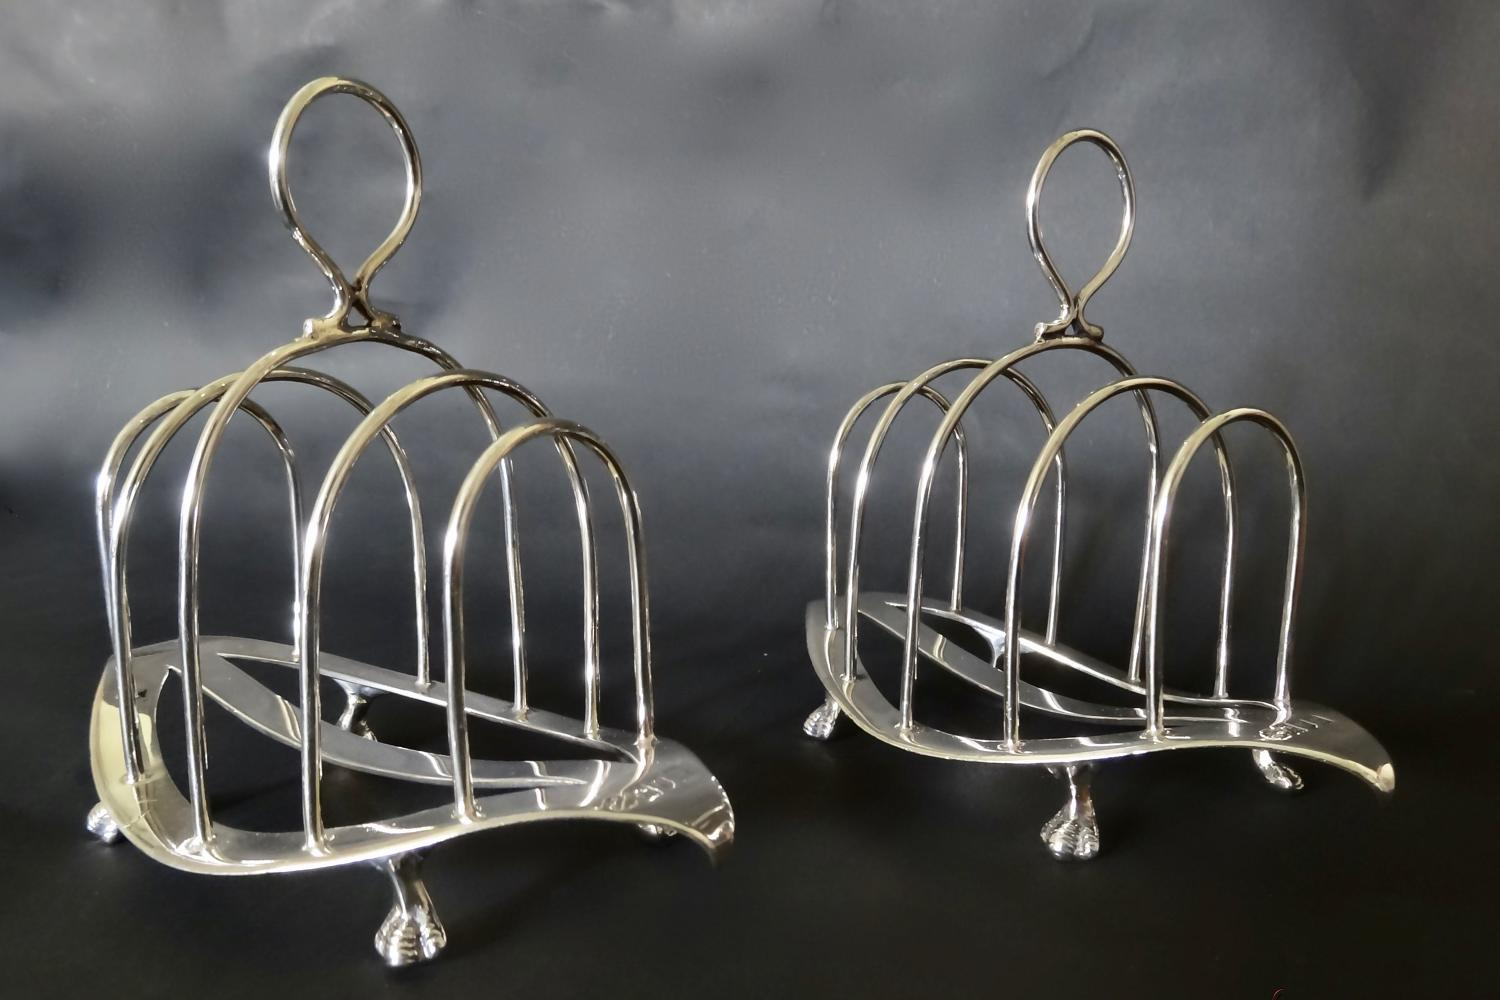 Pair of Antique English silver toast racks